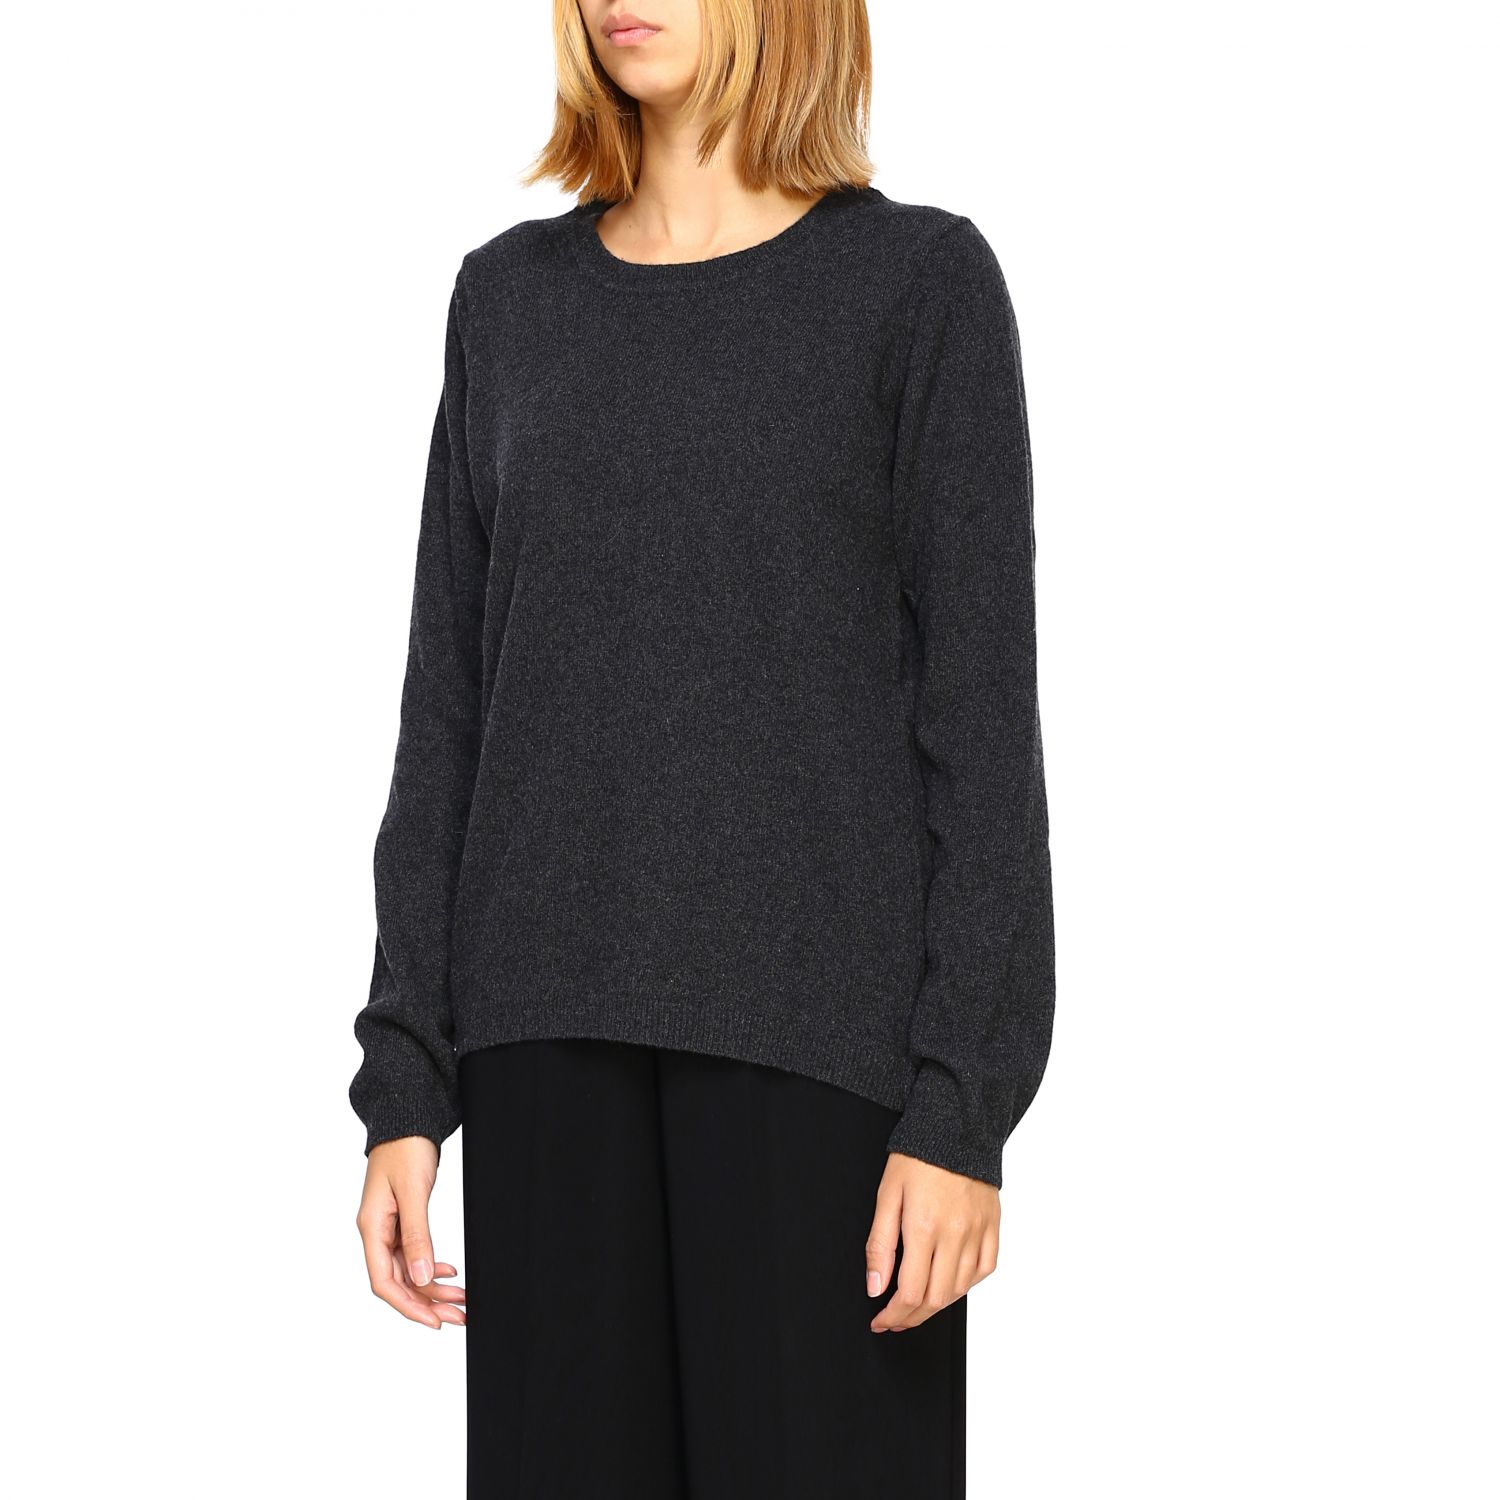 Jumper women Re_branded charcoal 4